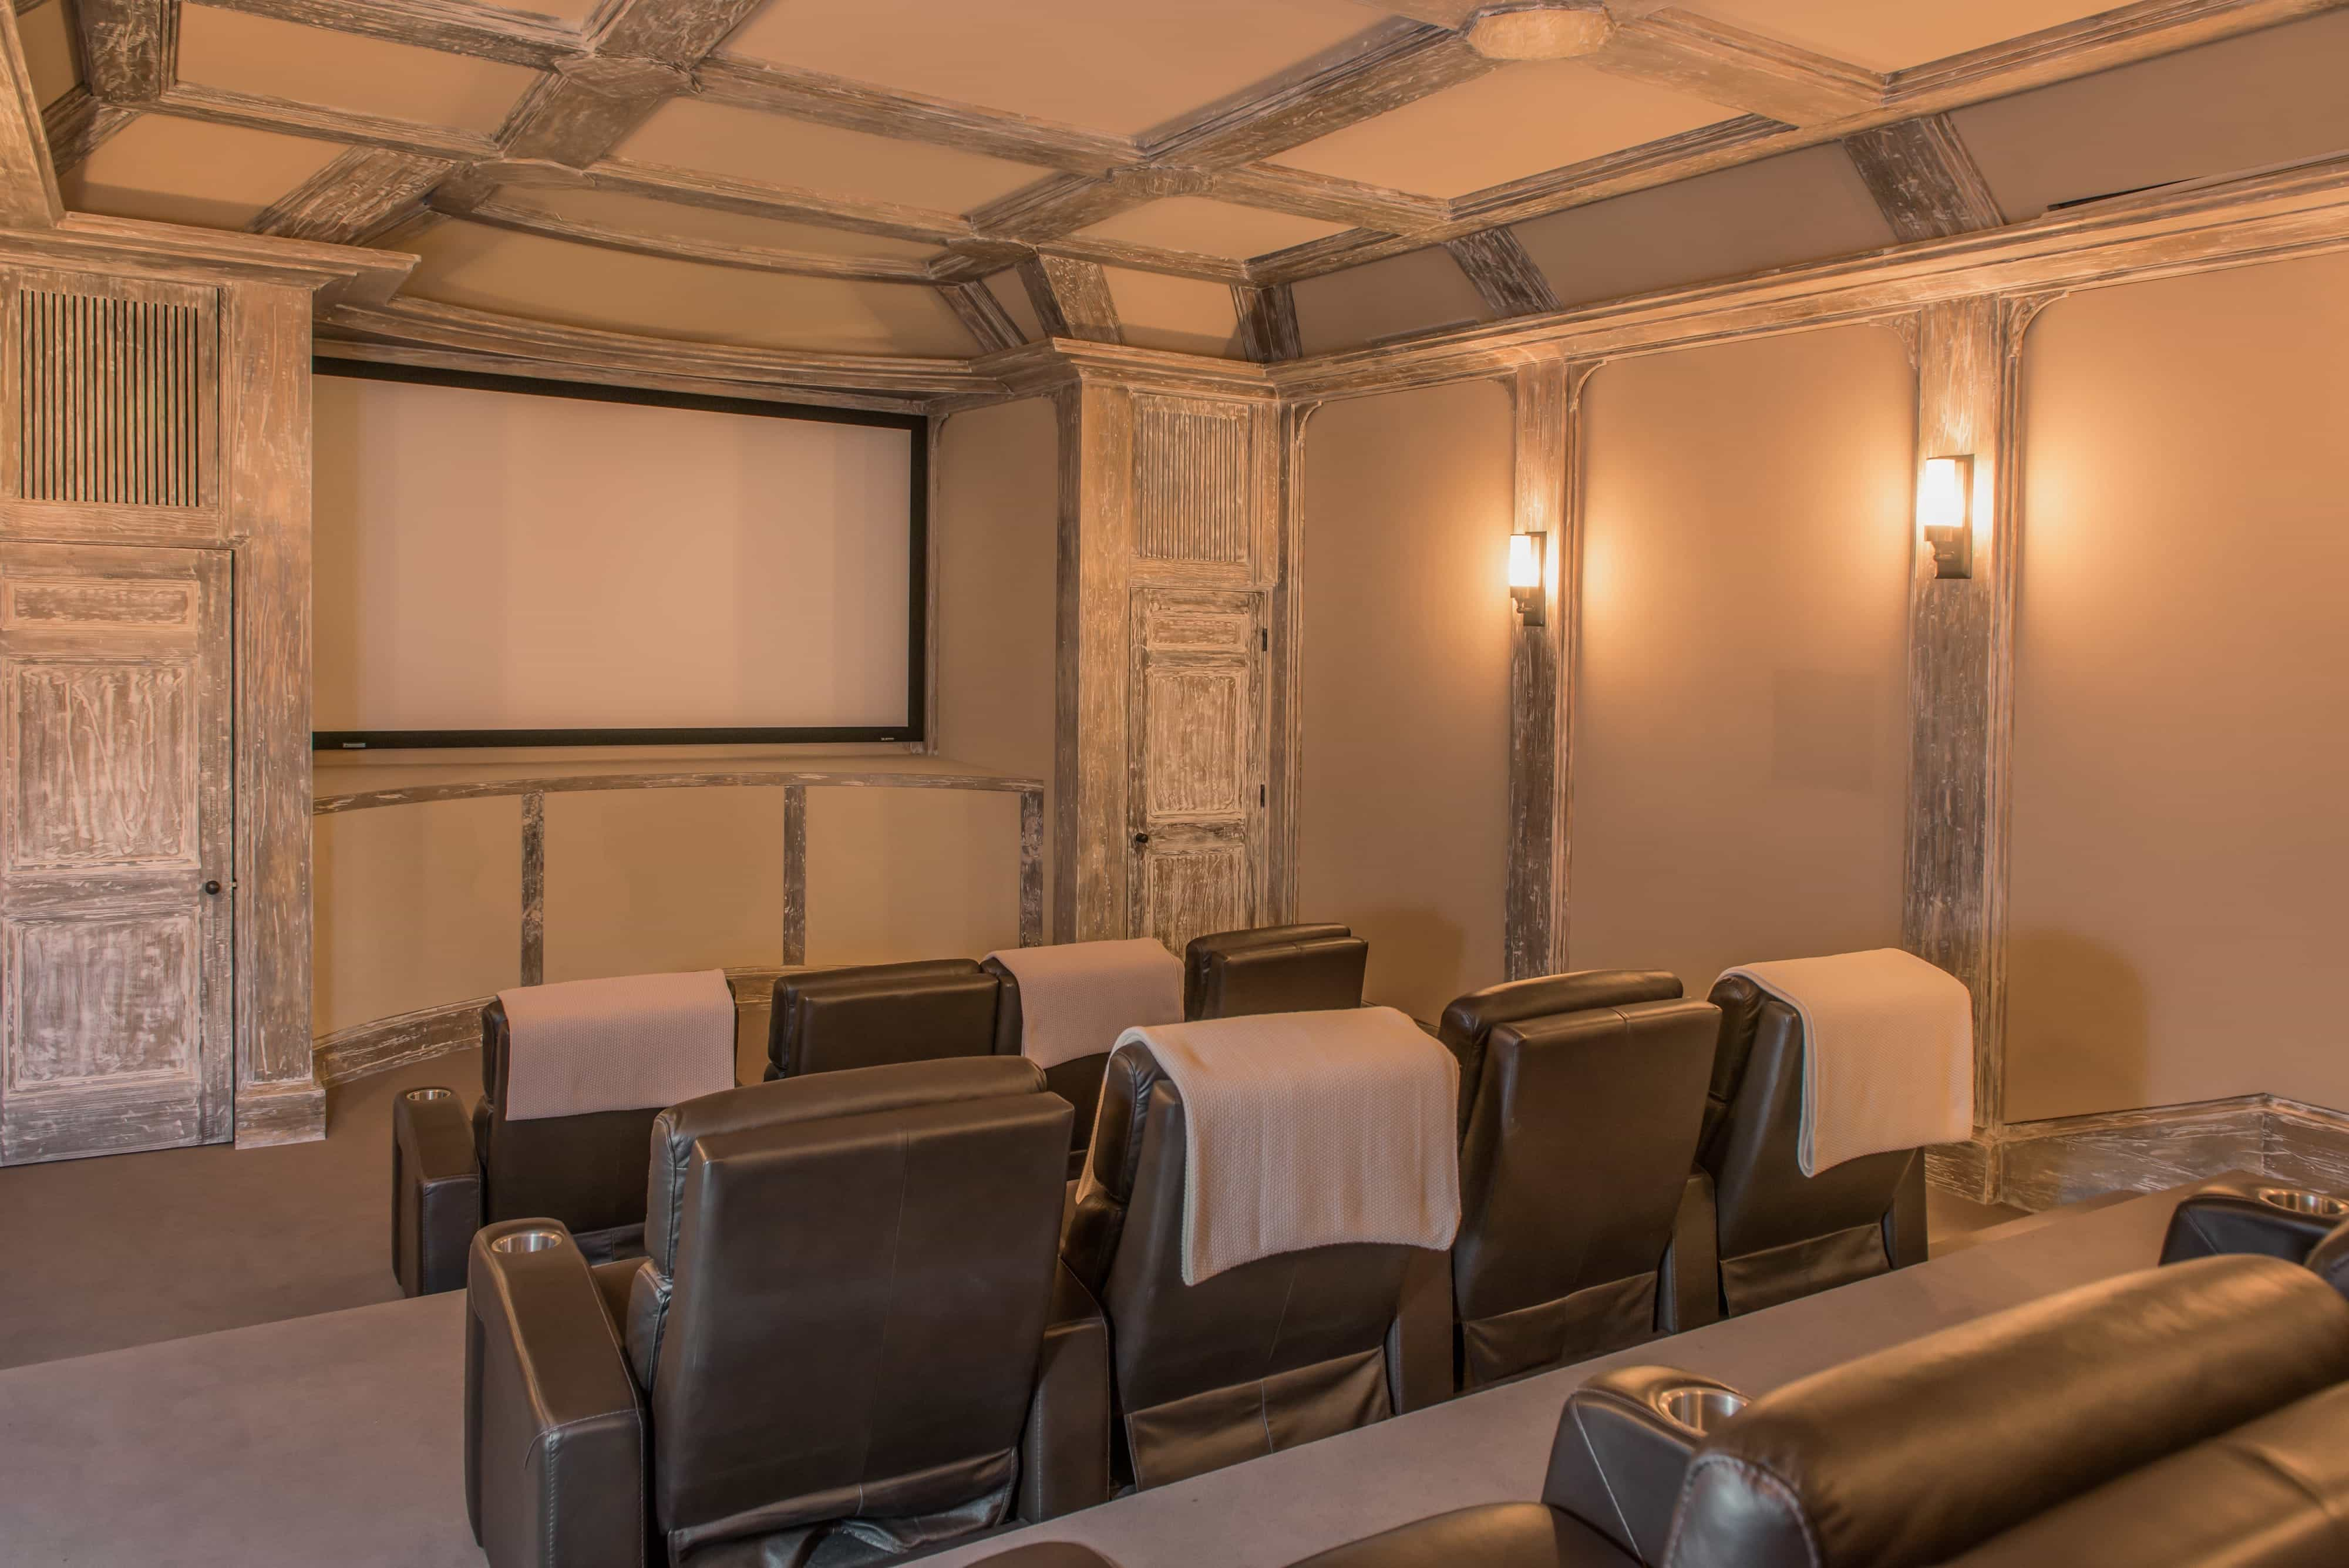 Home Theater With Leather Viewing Seats And Rustic Coffered Ceiling (Image 11 of 21)